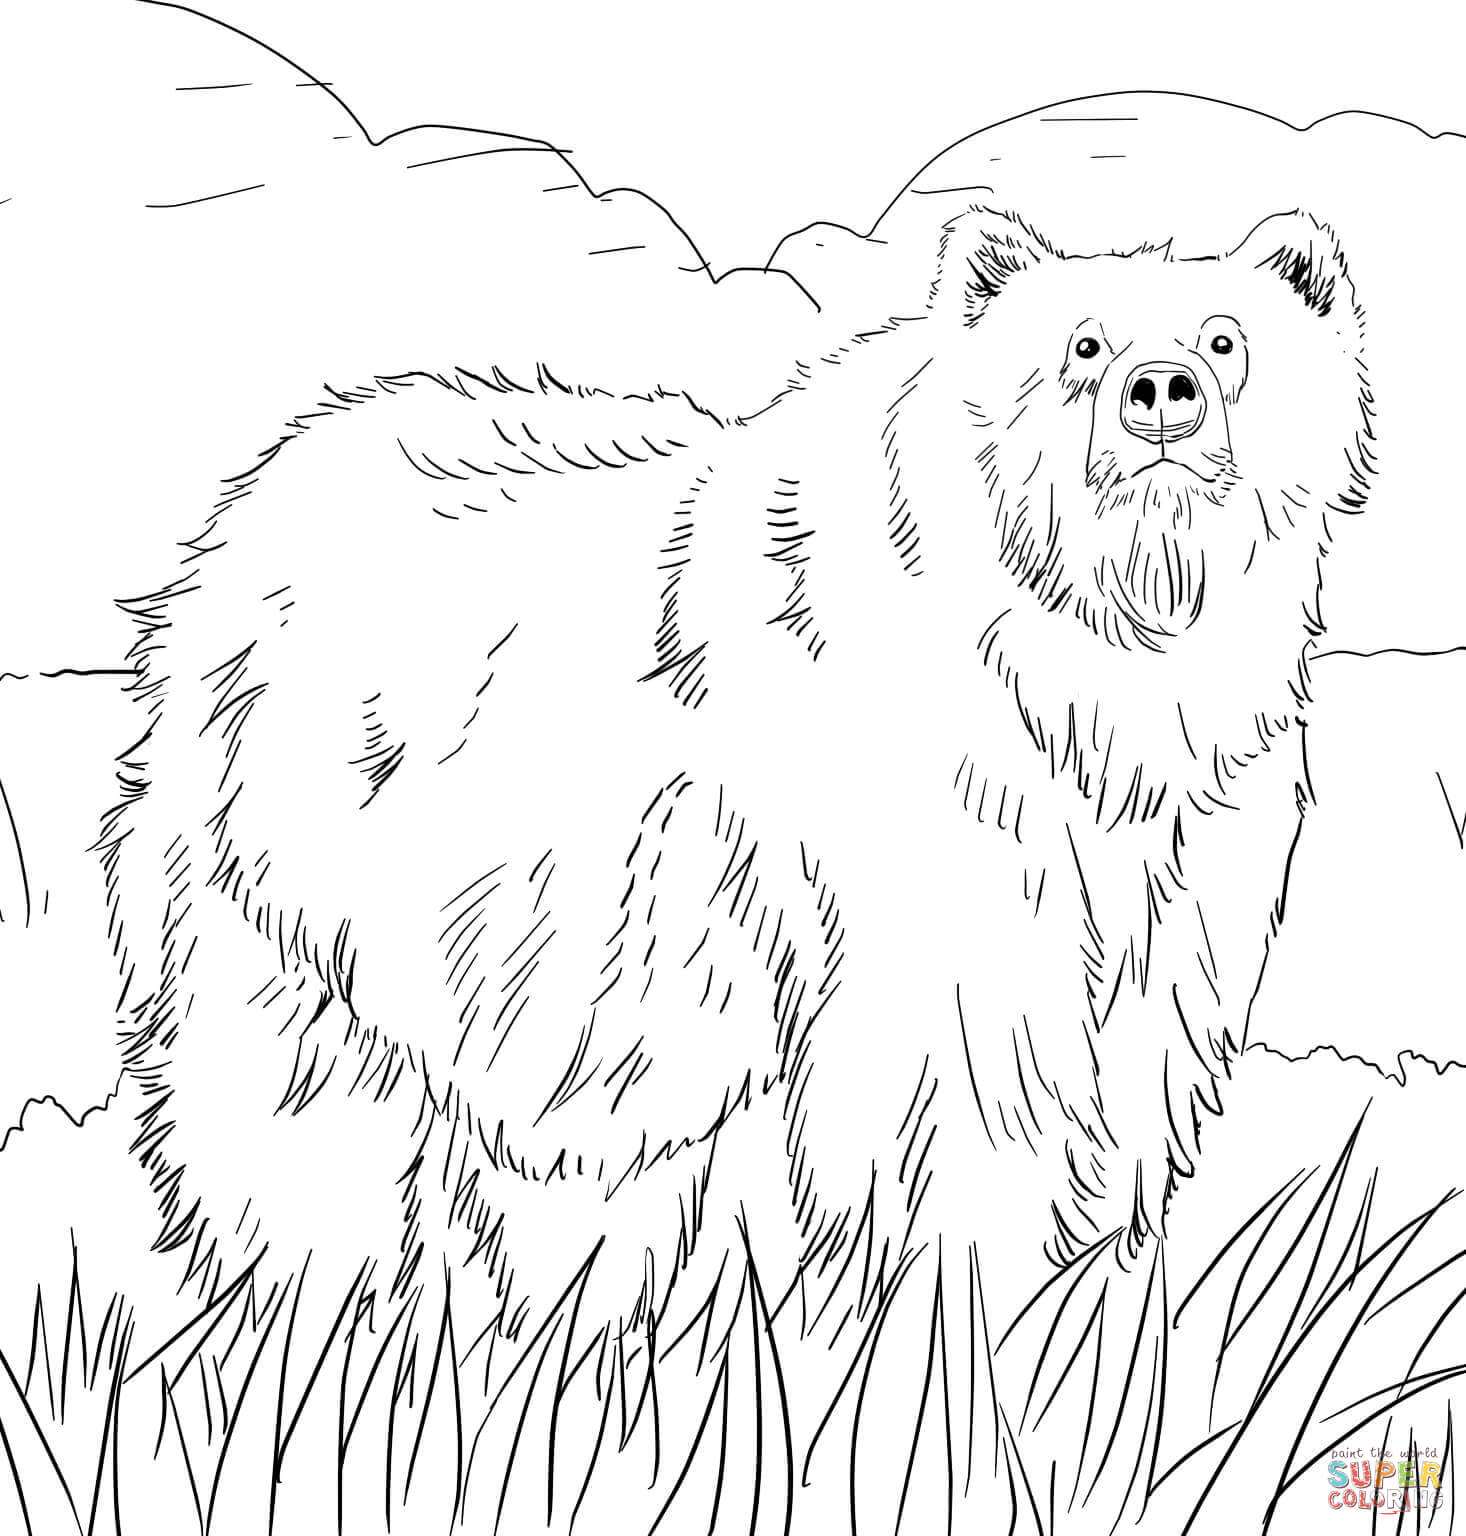 grizzly bear coloring pages bear coloring pages coloring pages to download and print pages grizzly bear coloring